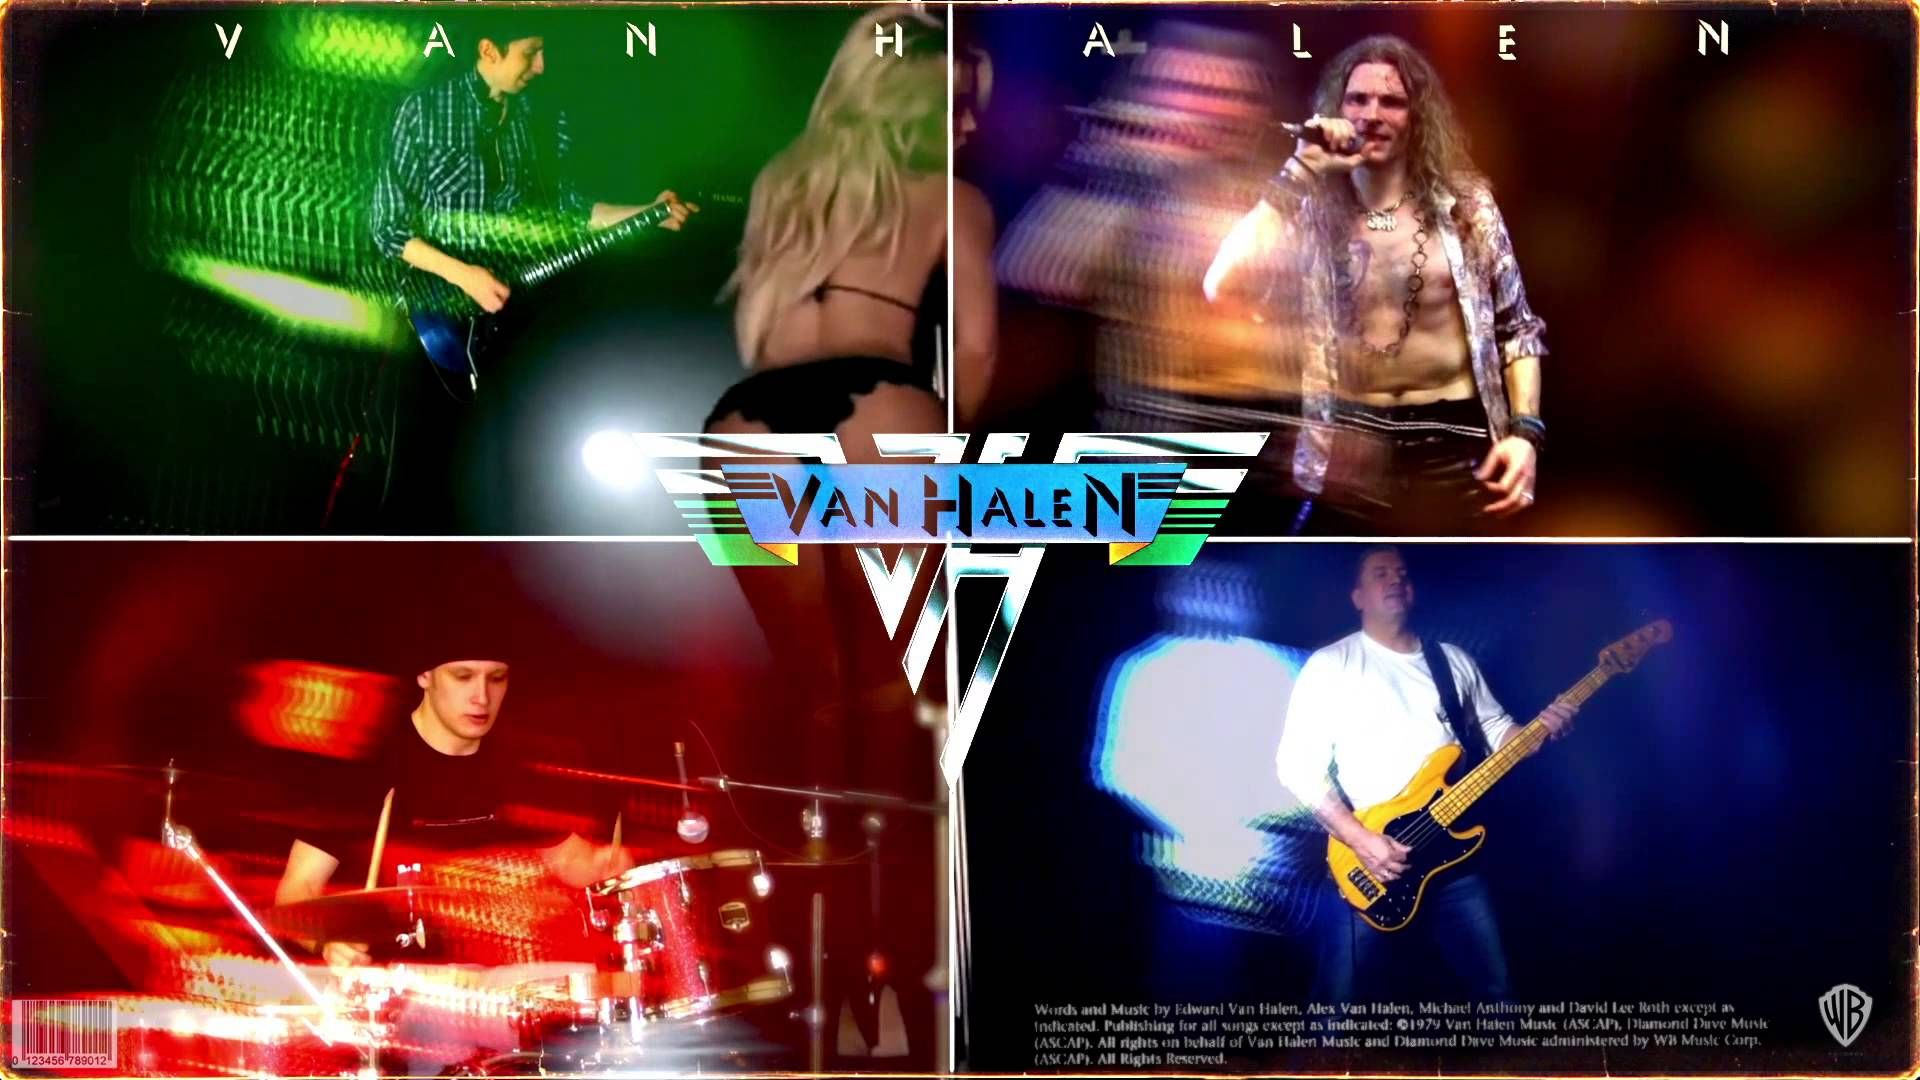 Ain T Talkin About Love A Van Halen Full Cover Collab With Images Van Halen Talk About Love